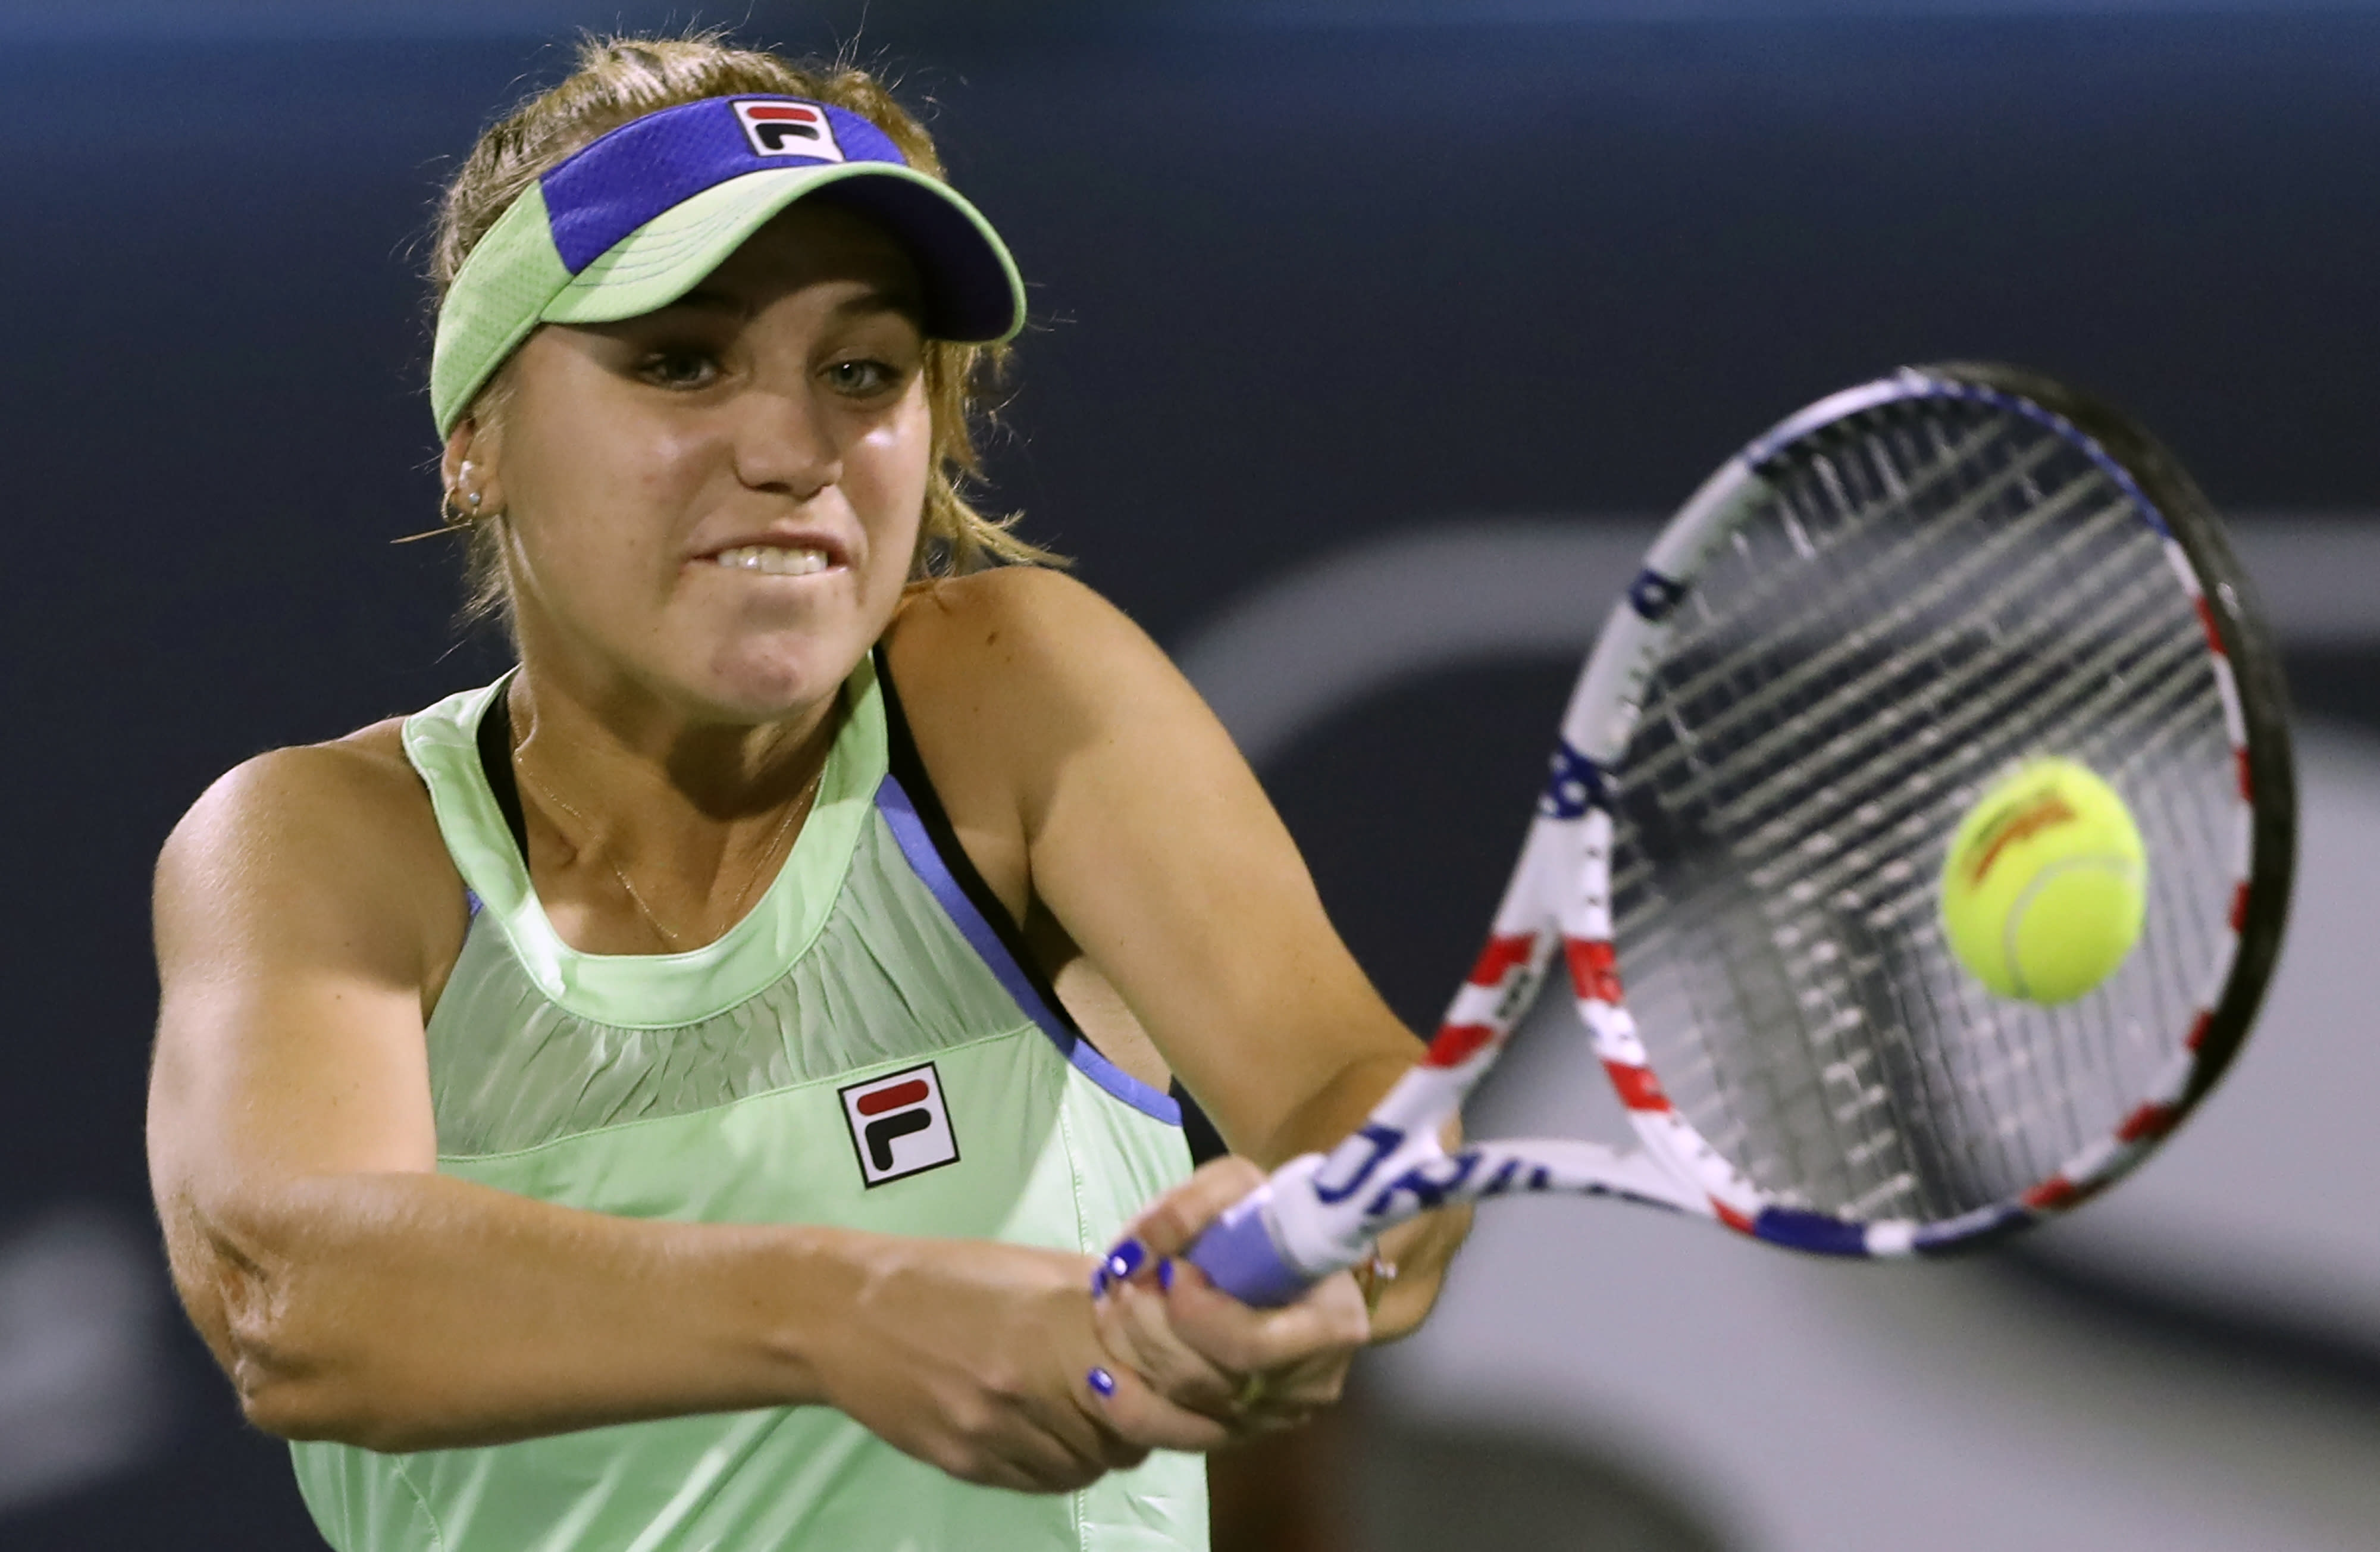 FILE - In this Feb. 18, 2020, file photo, Sofia Kenin returns the ball to Kazakhstan's Elena Rybakina during a match of the Dubai Duty Free Tennis Championship in Dubai, United Arab Emirates. Kenin is scheduled to play in the U.S. Open, scheduled for Aug. 31-Sept. 13, 2020.(AP Photo/Kamran Jebreili, File)